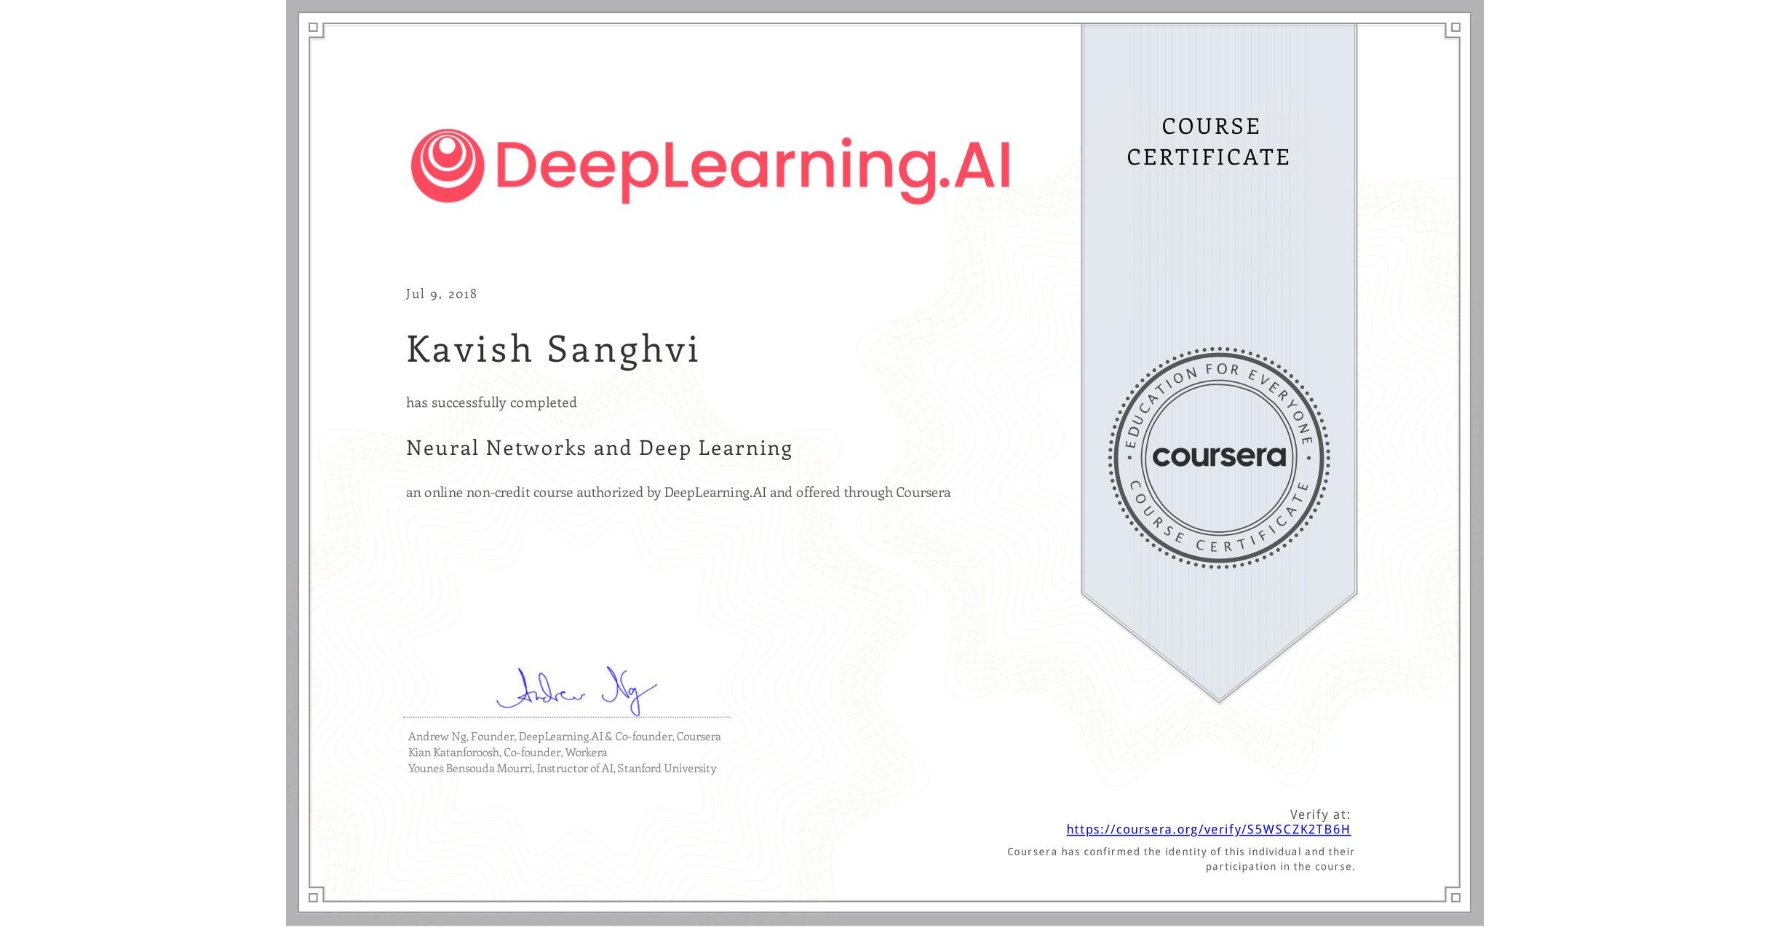 View certificate for Kavish Sanghvi, Neural Networks and Deep Learning, an online non-credit course authorized by DeepLearning.AI and offered through Coursera